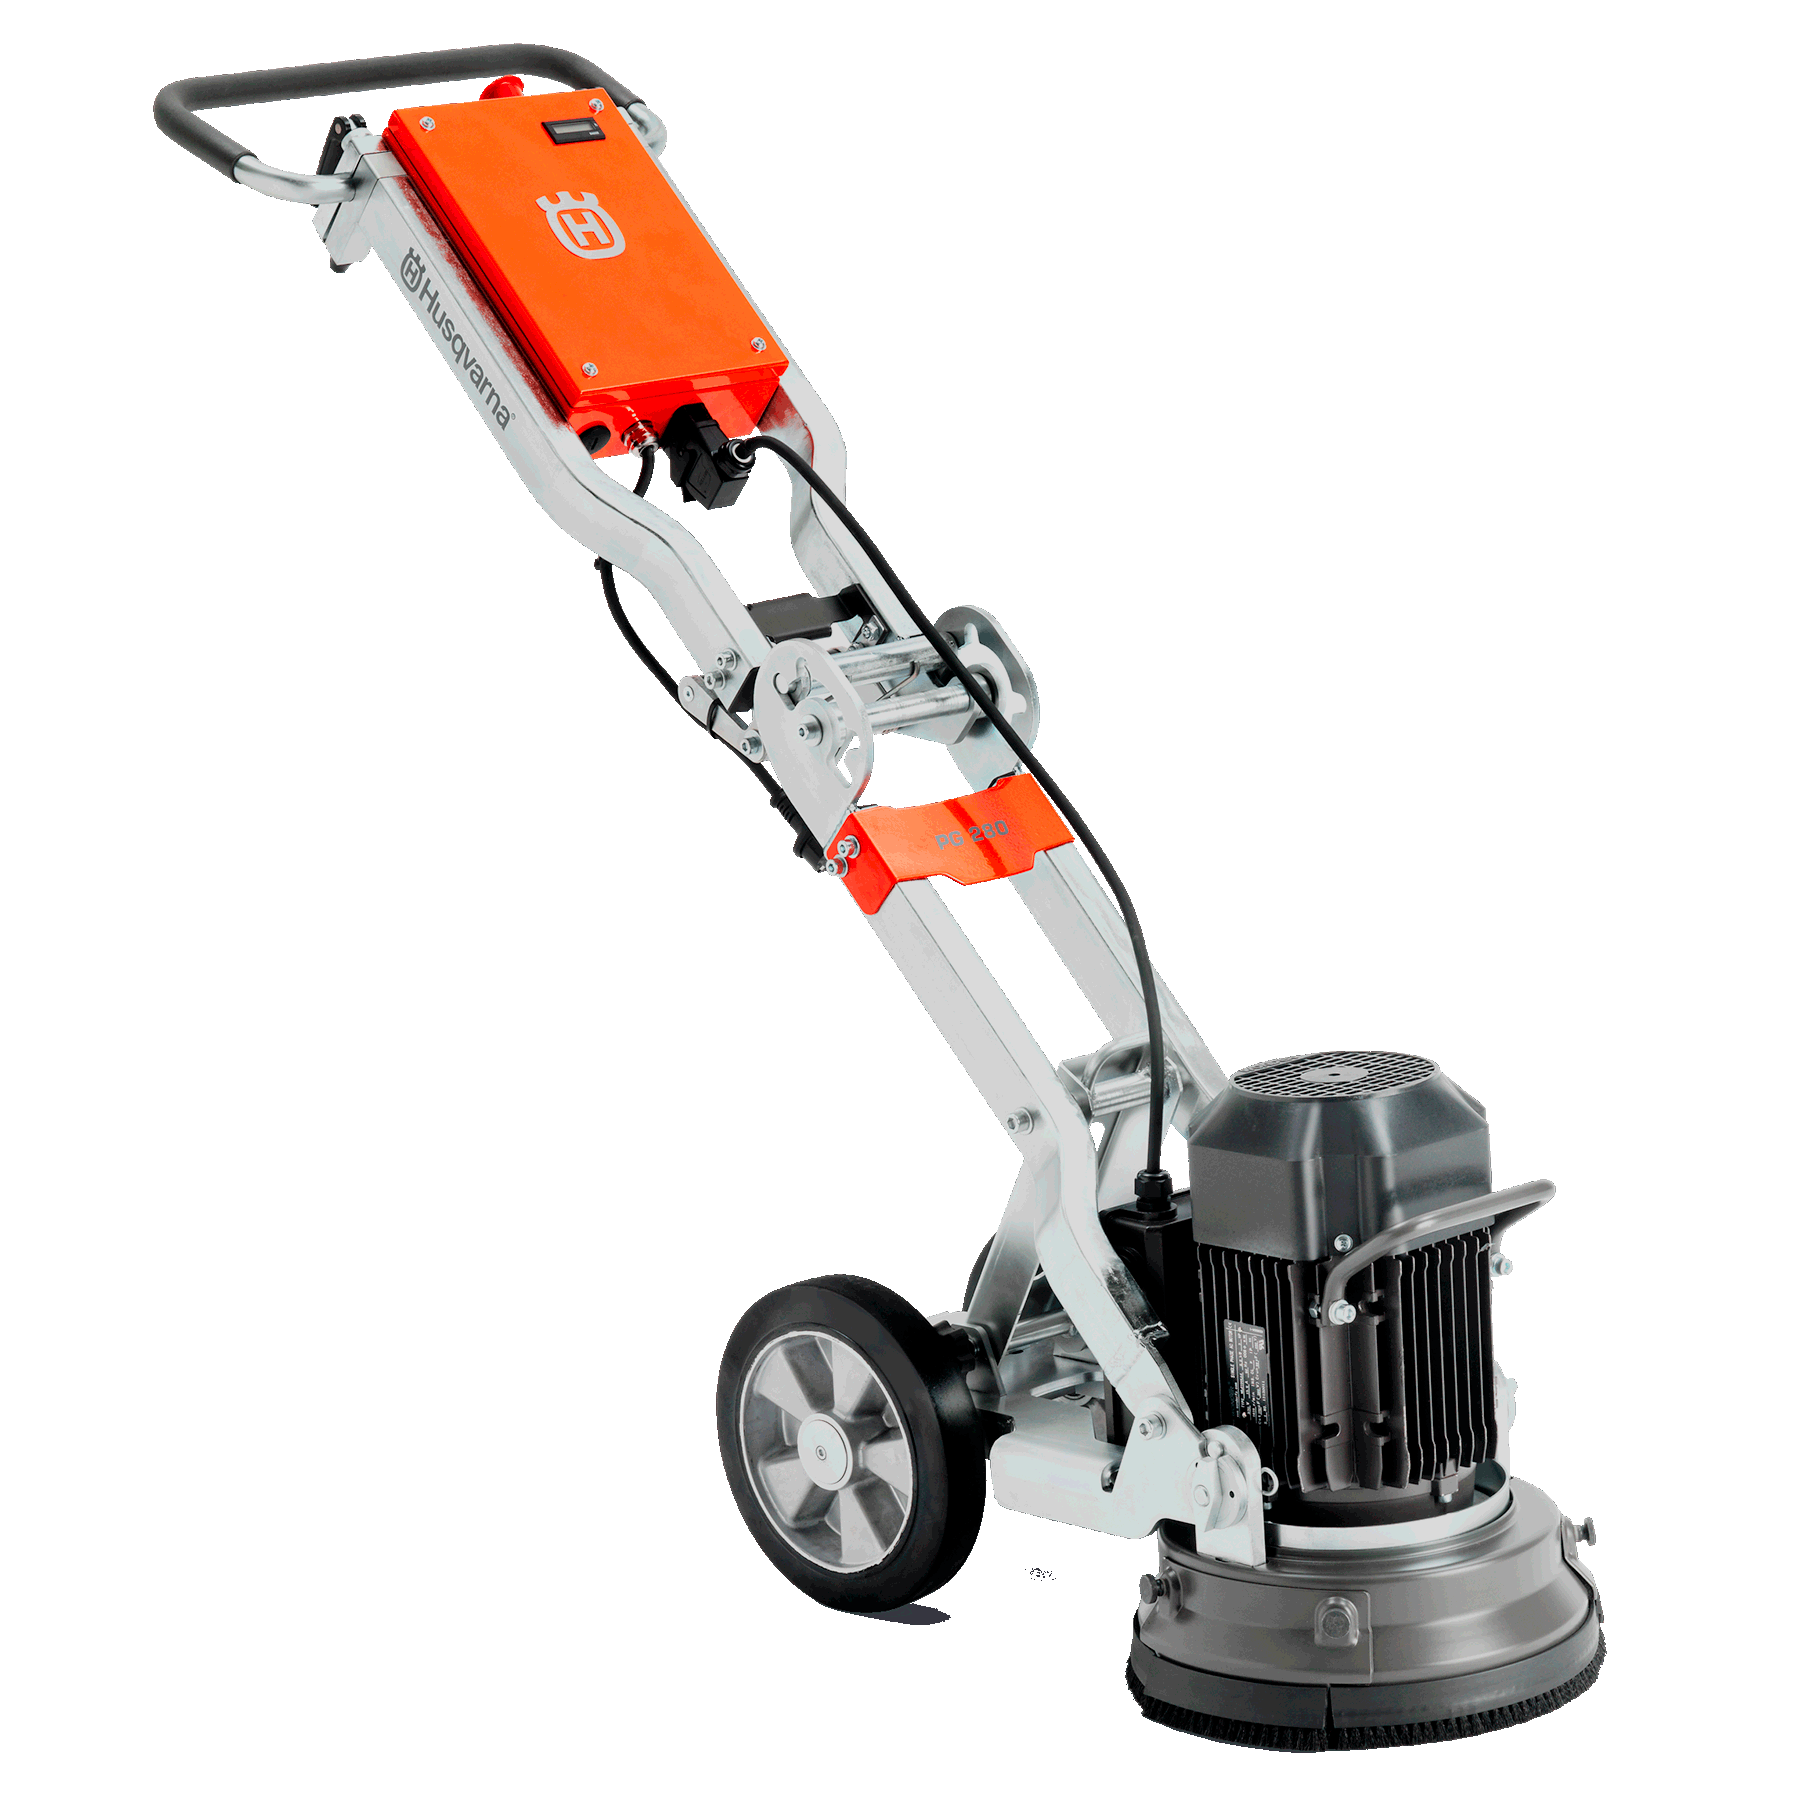 Concrete grinder 16 1/2in 120V